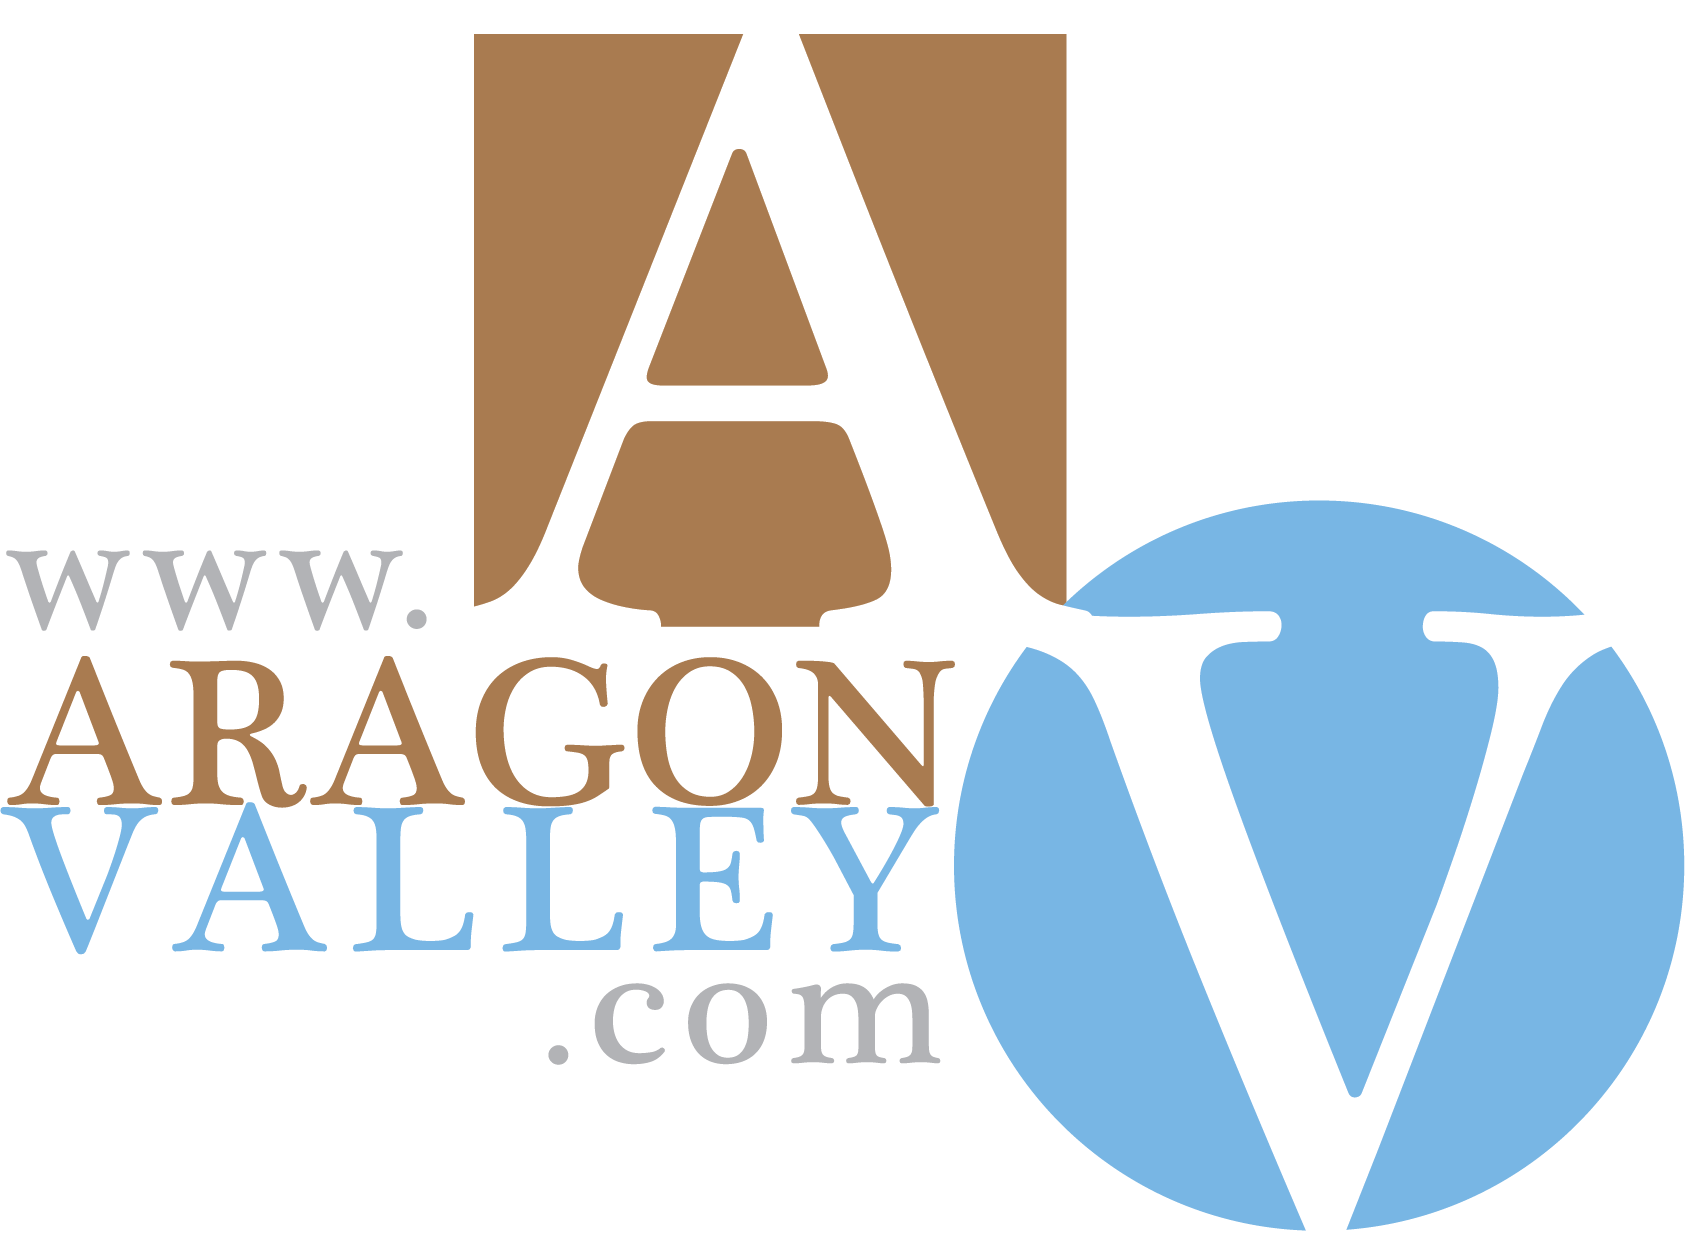 Aragon Valley